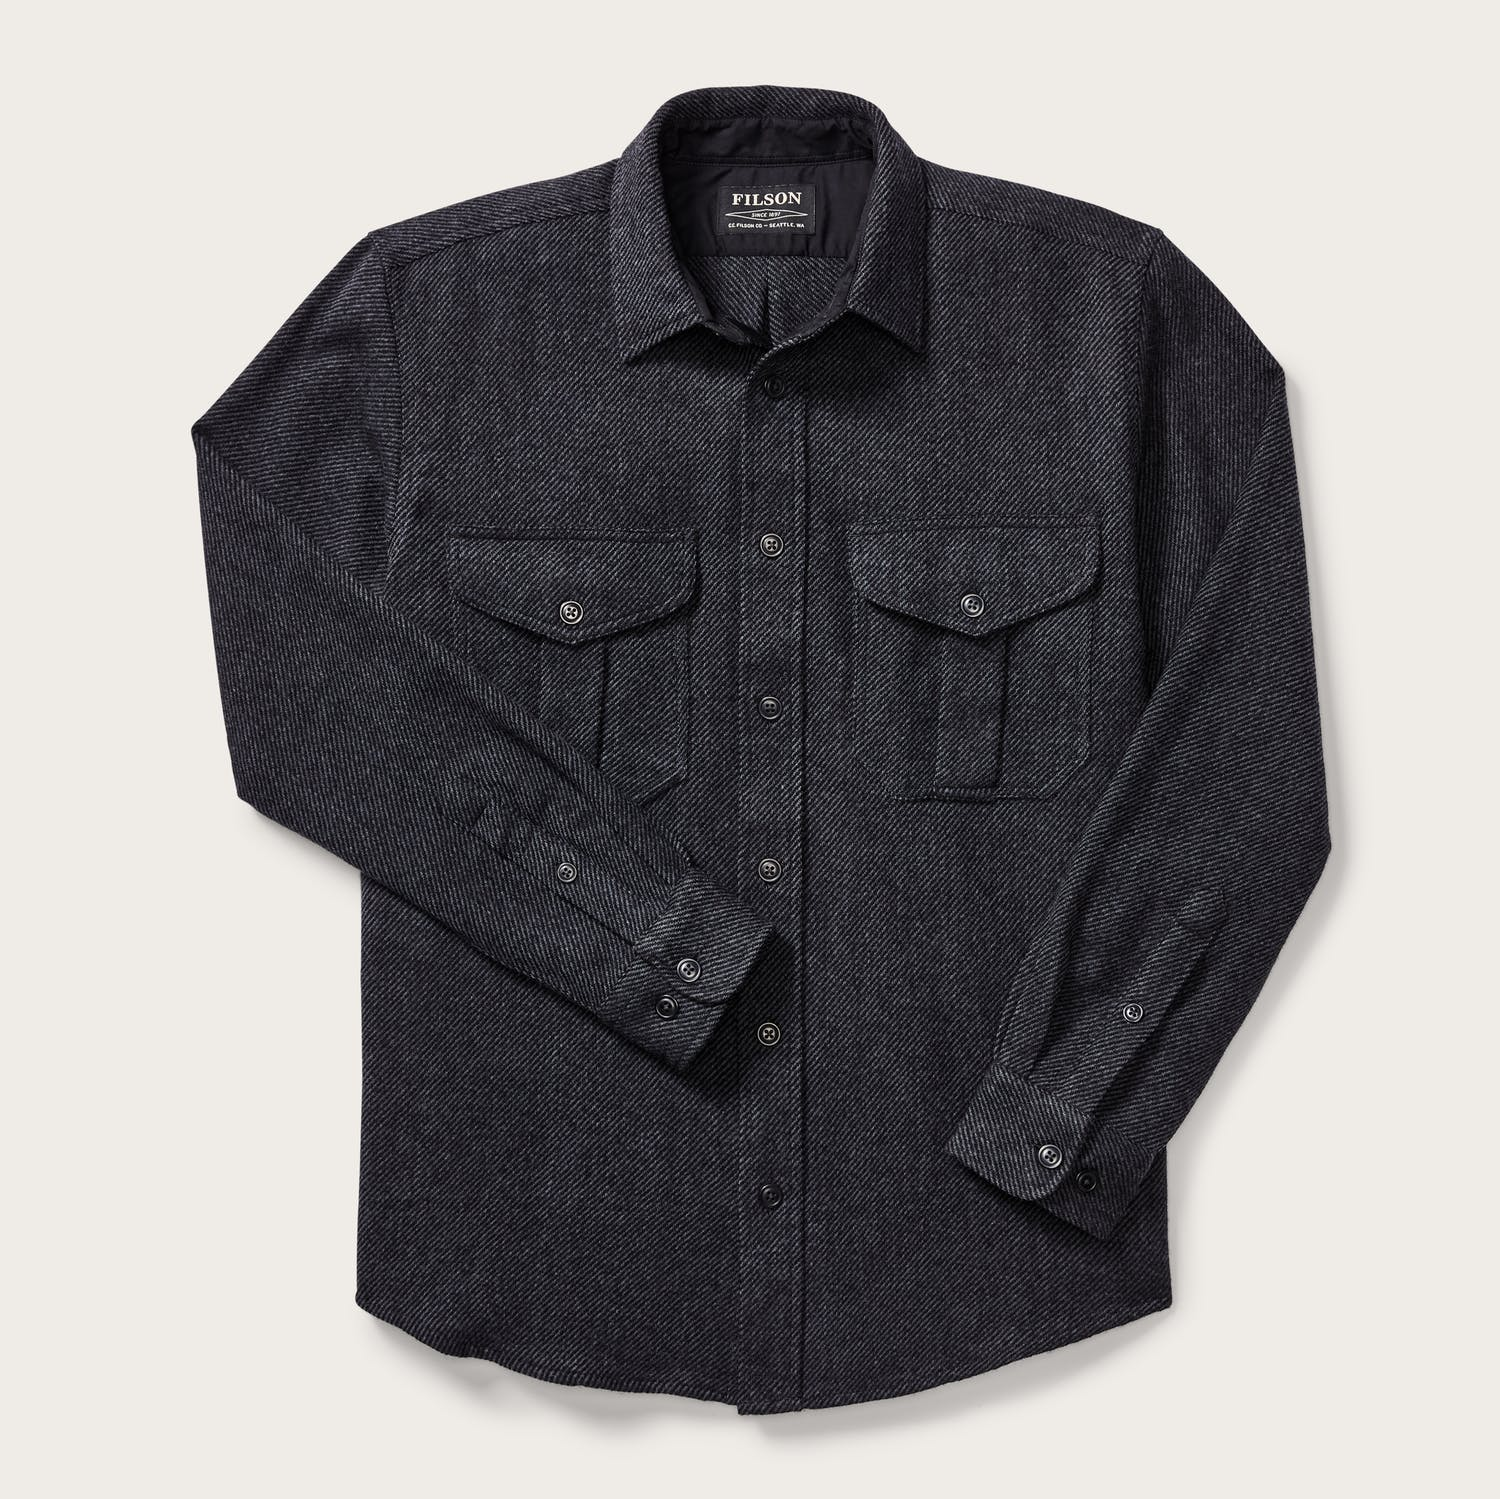 Filson - Northwest Wool Shirt - The Populess Company